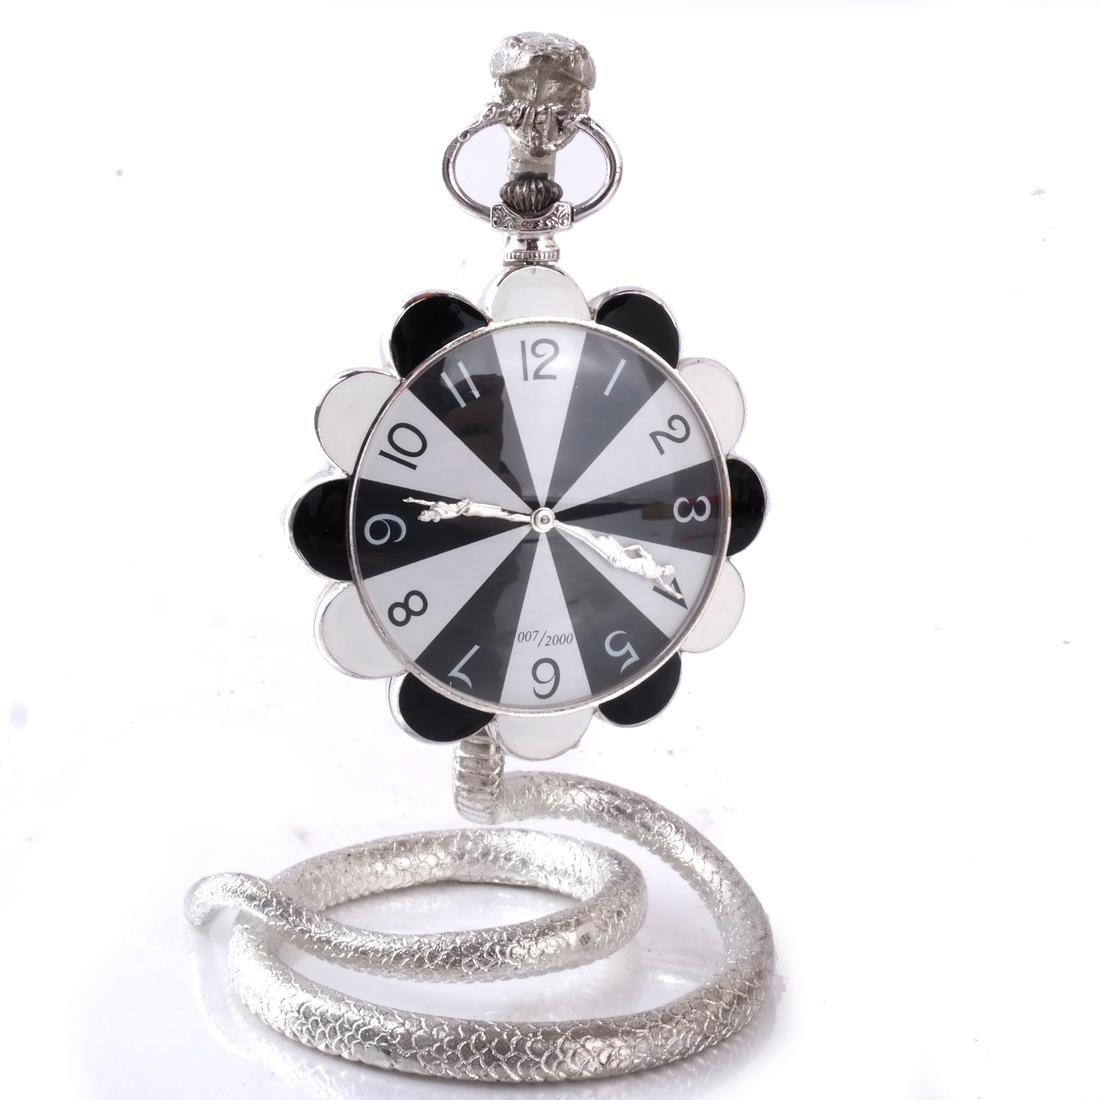 Erte: Pocket Watch & Stand, Silver - 2